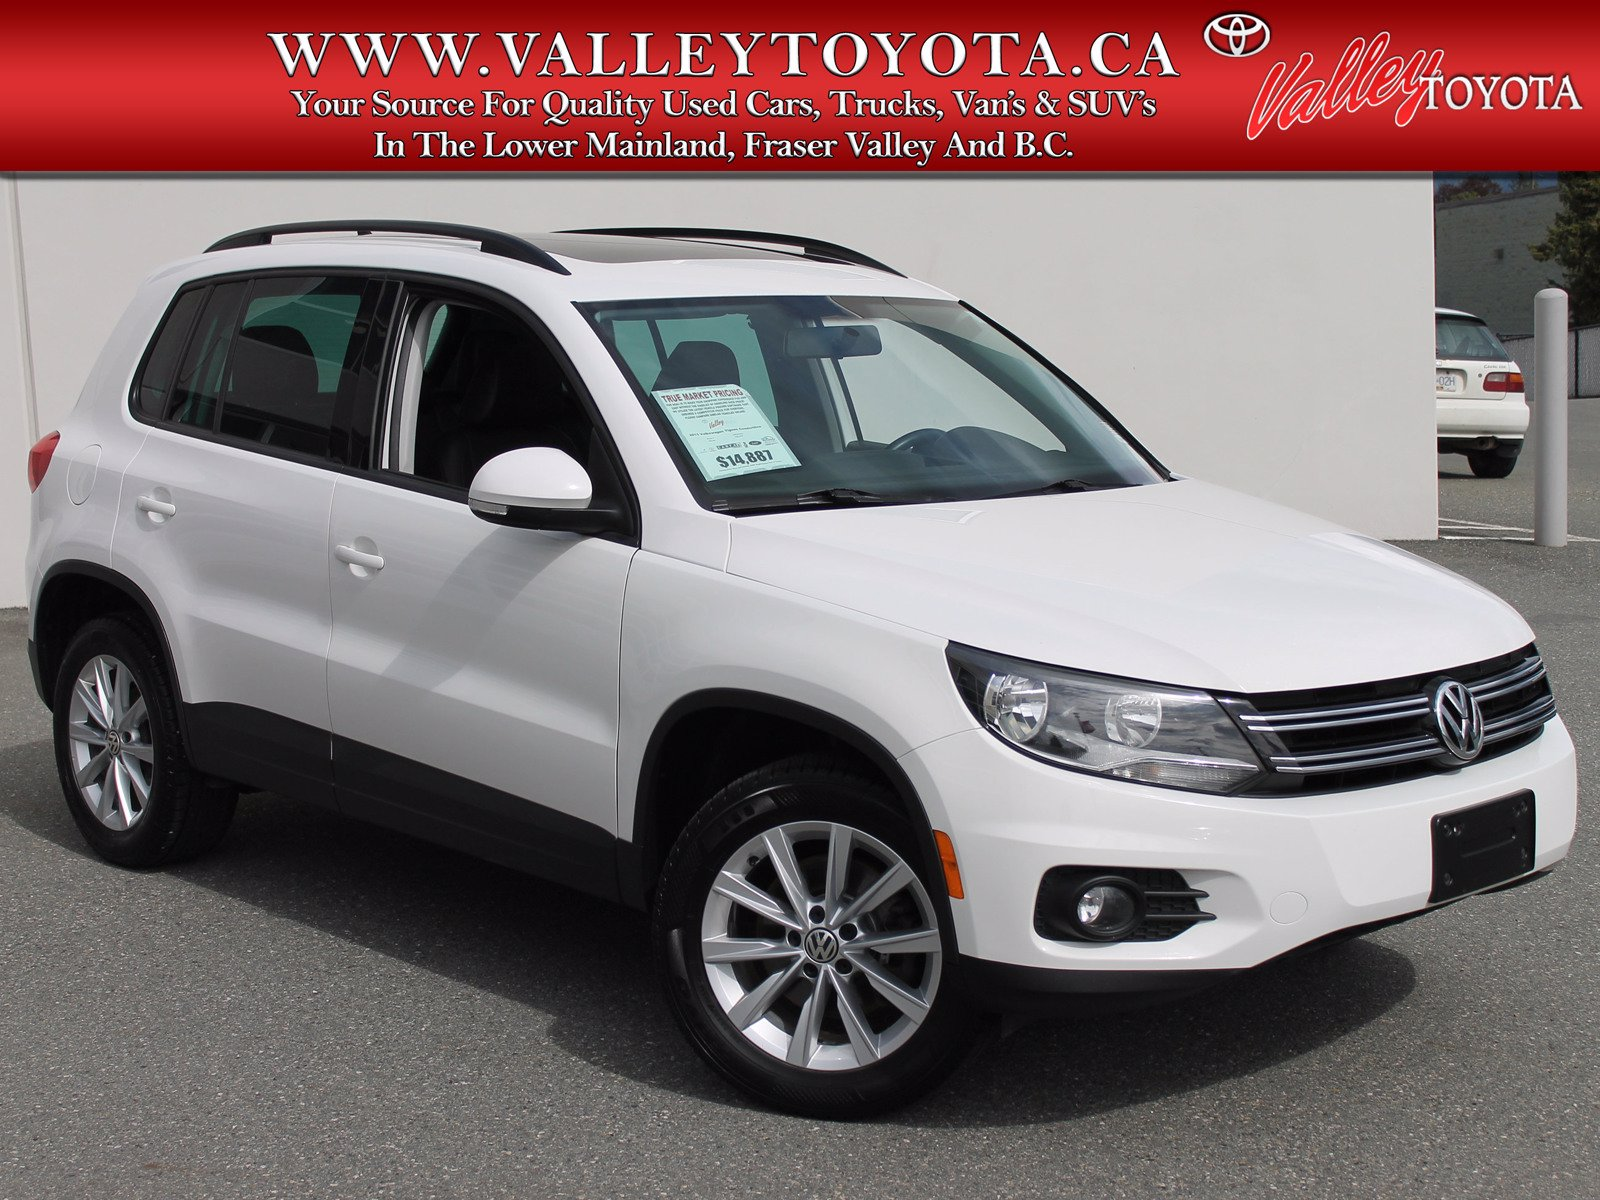 Pre-Owned 2013 Volkswagen Tiguan COMFORTLINE / PANORAMIC SUNROOF / BLUETOOTH